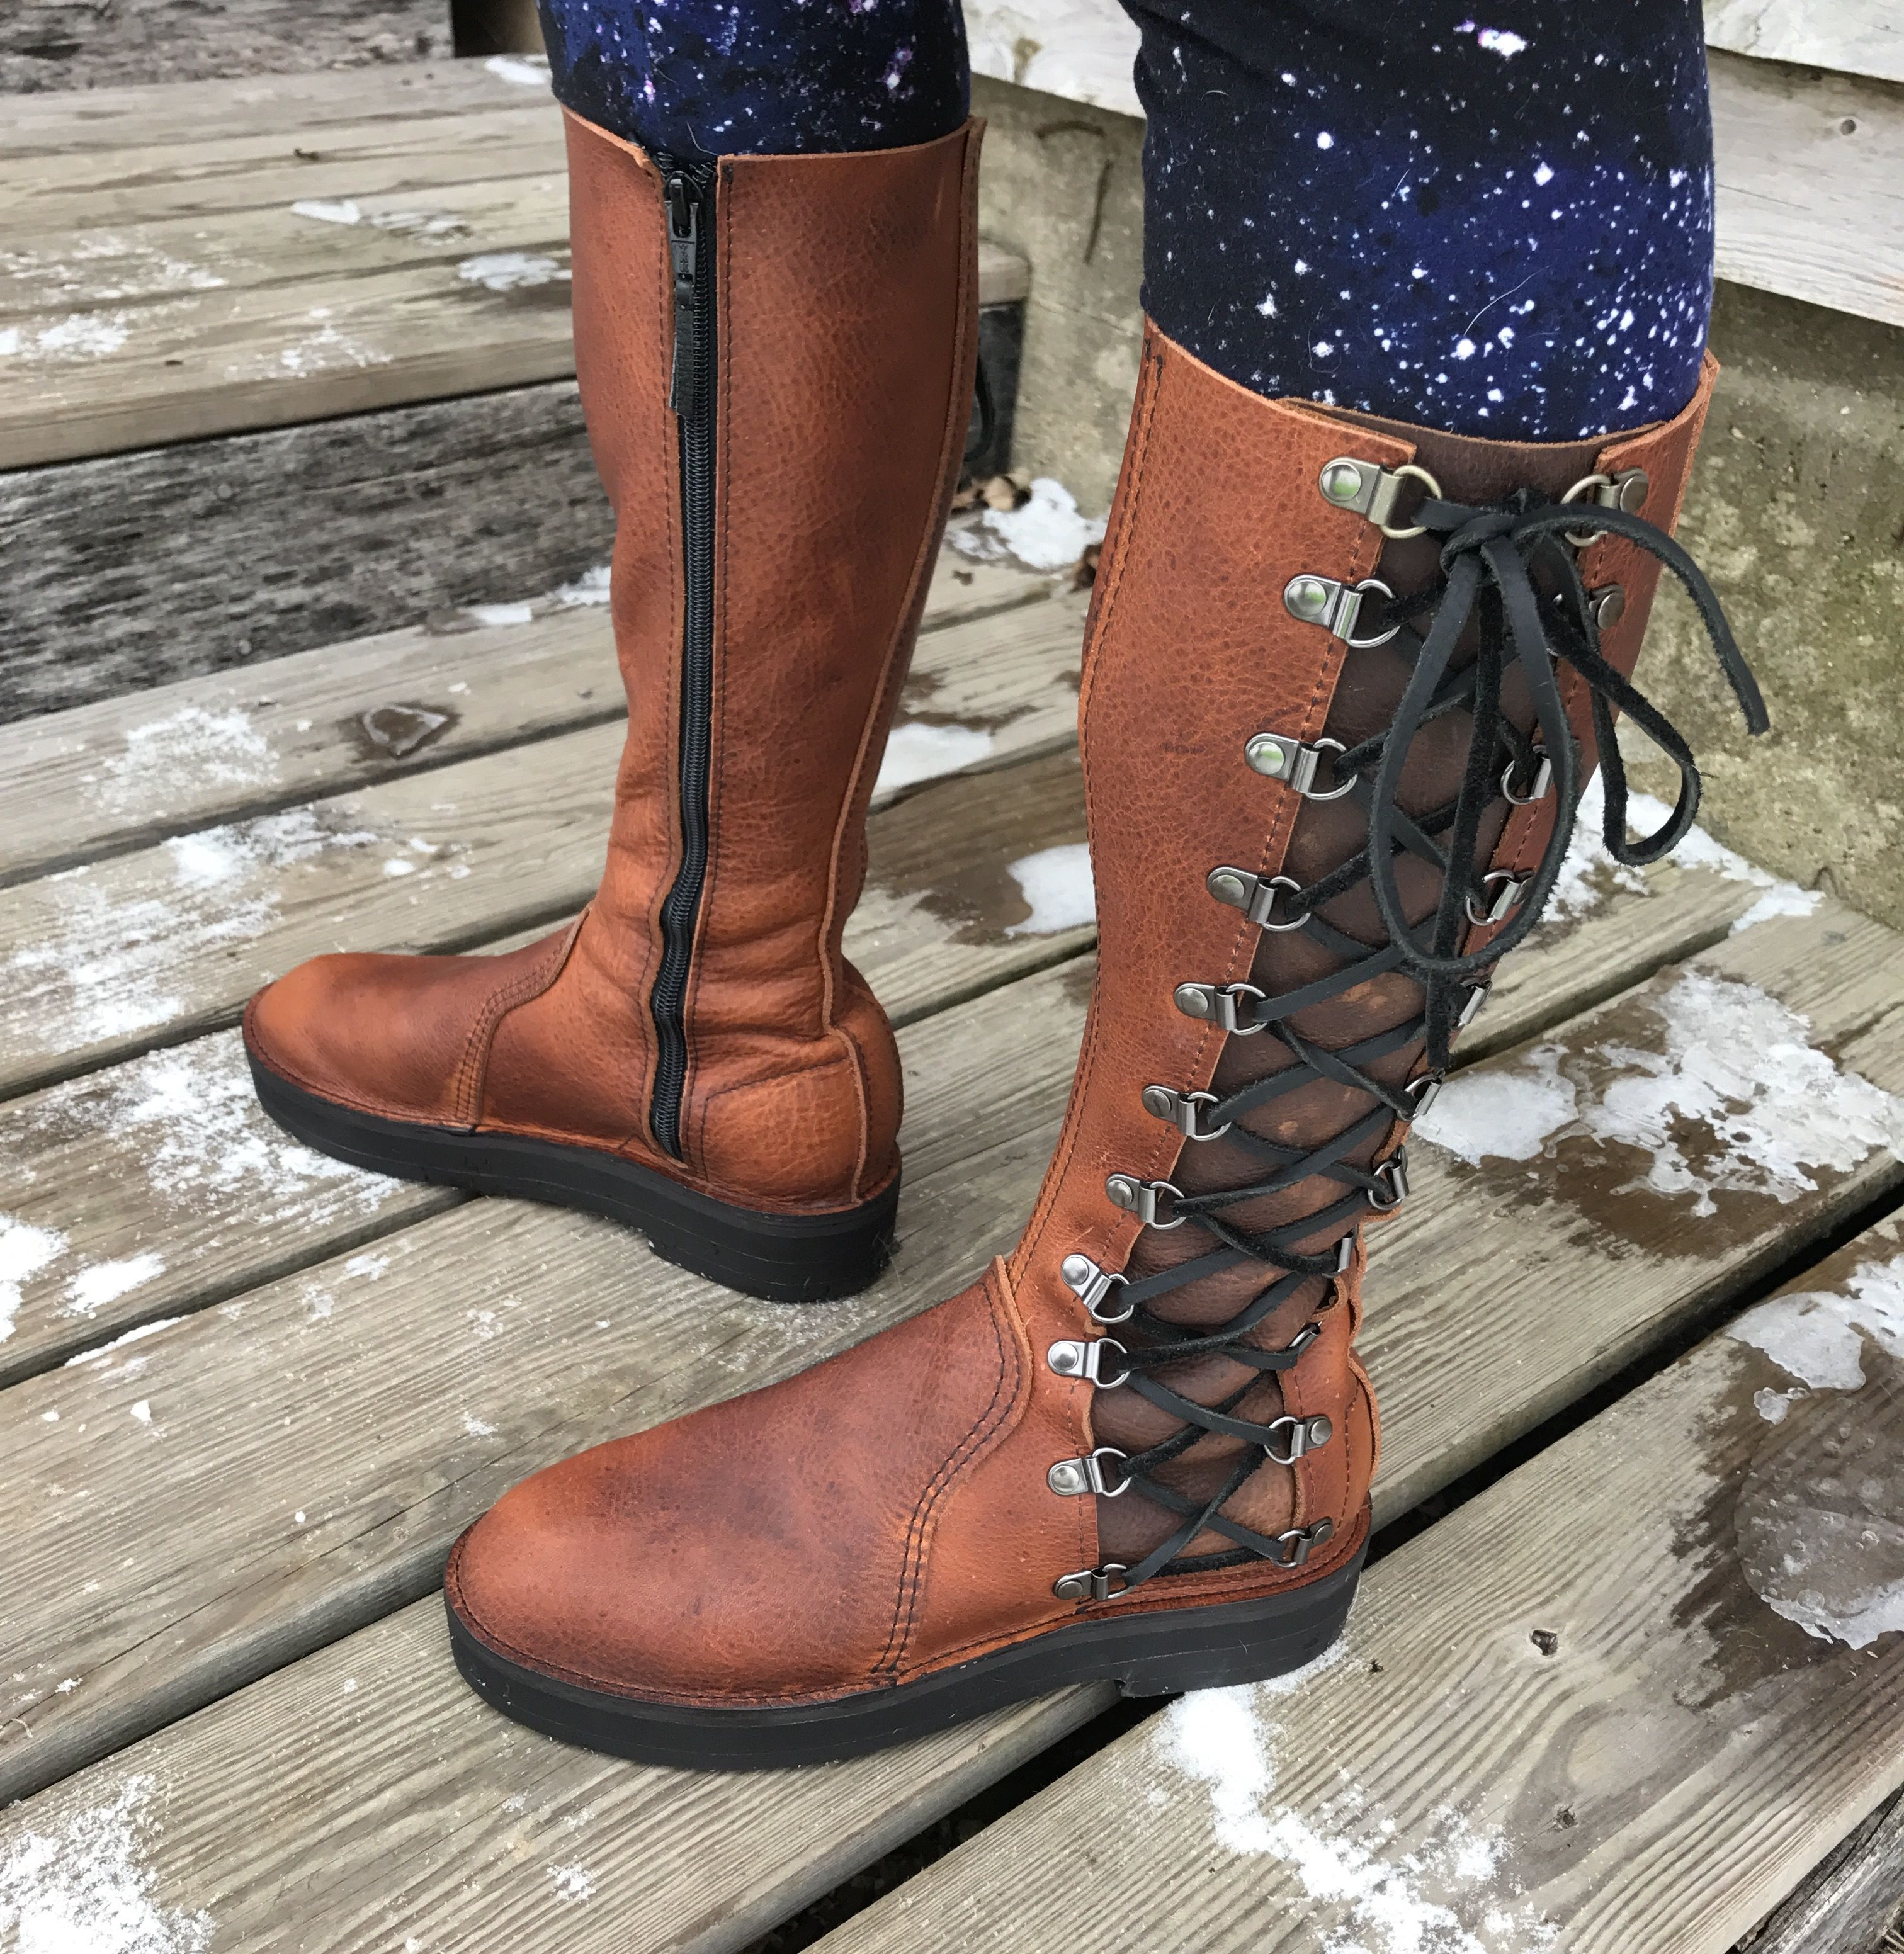 Buy Hand Made Victorian Steampunk Womens Boot Style, made